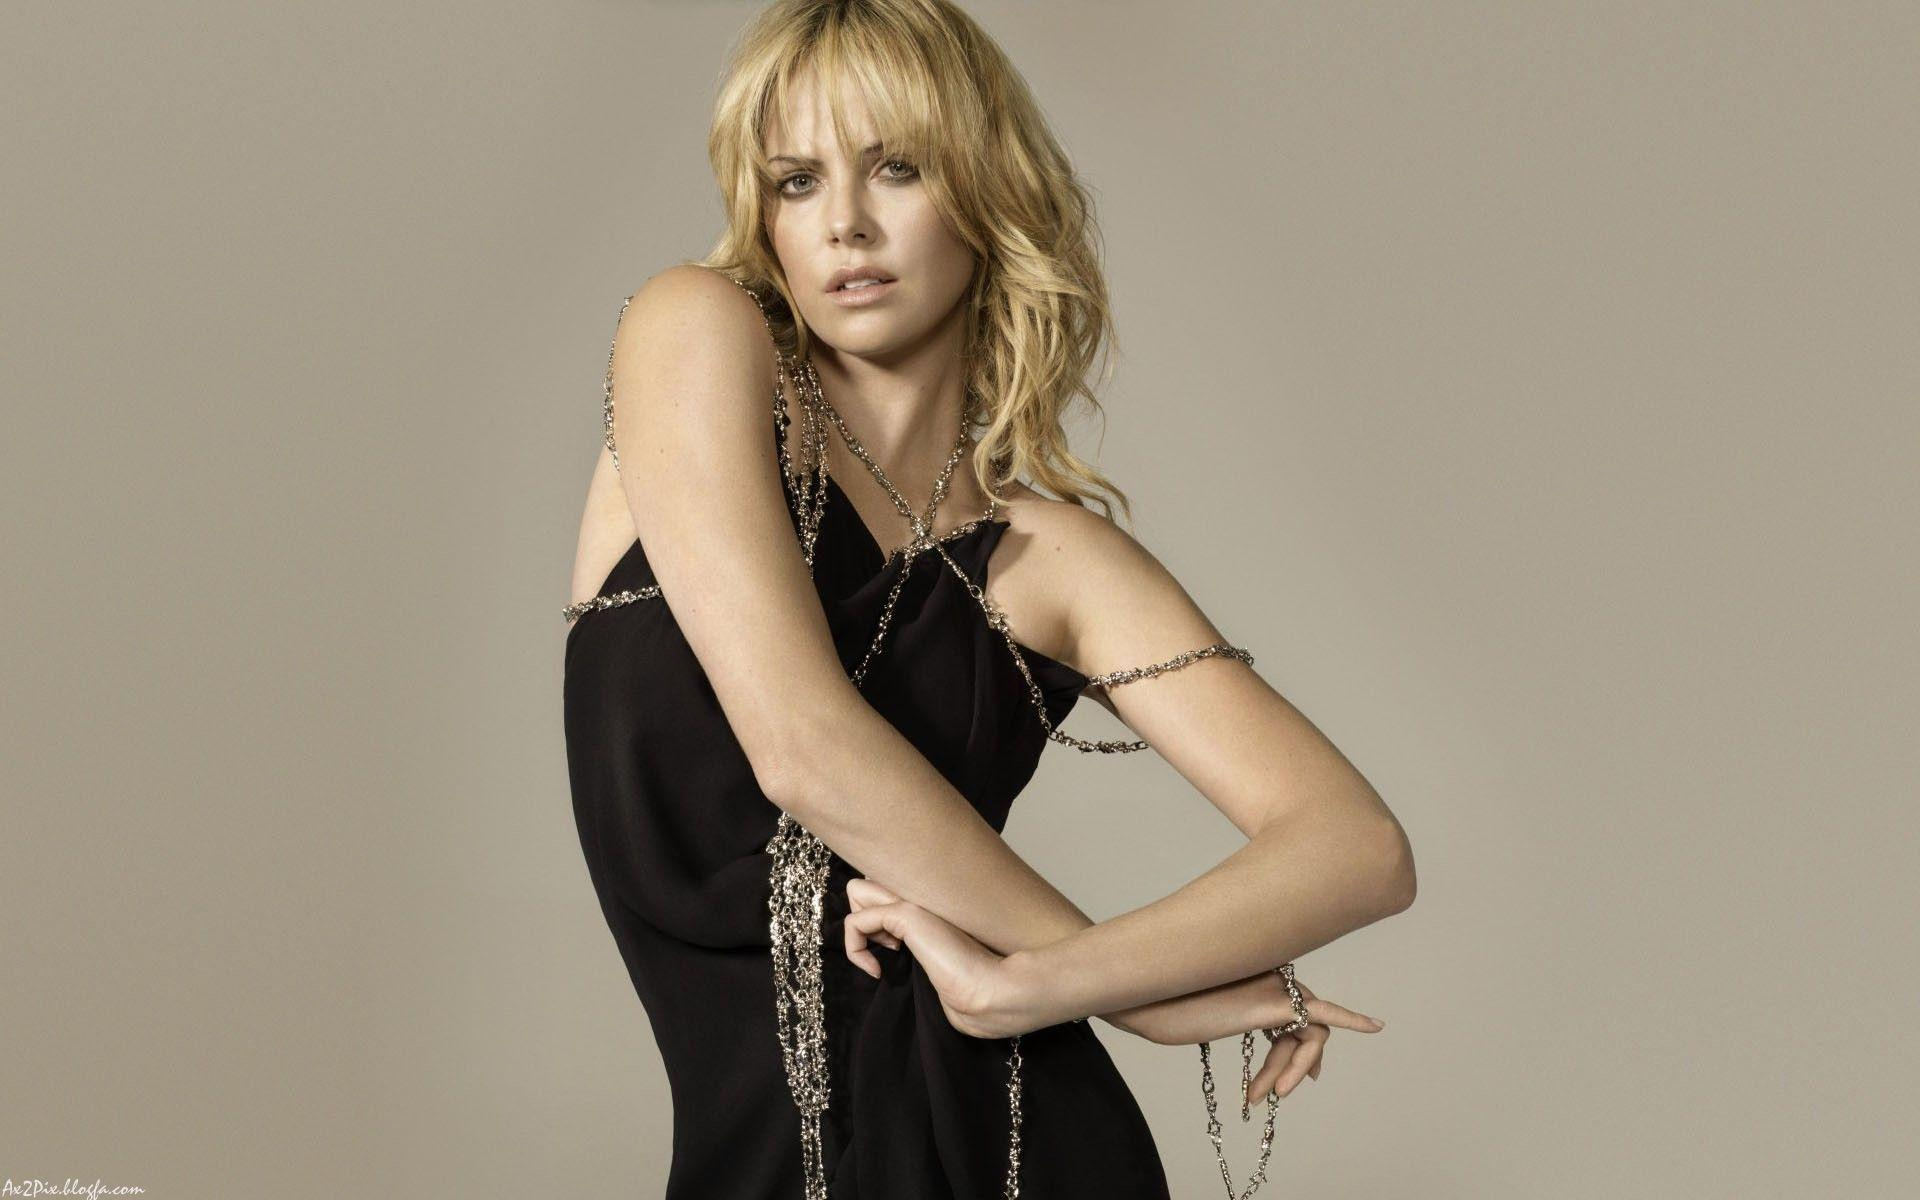 Charlize Theron wallpaper HD background download Facebook Covers ...